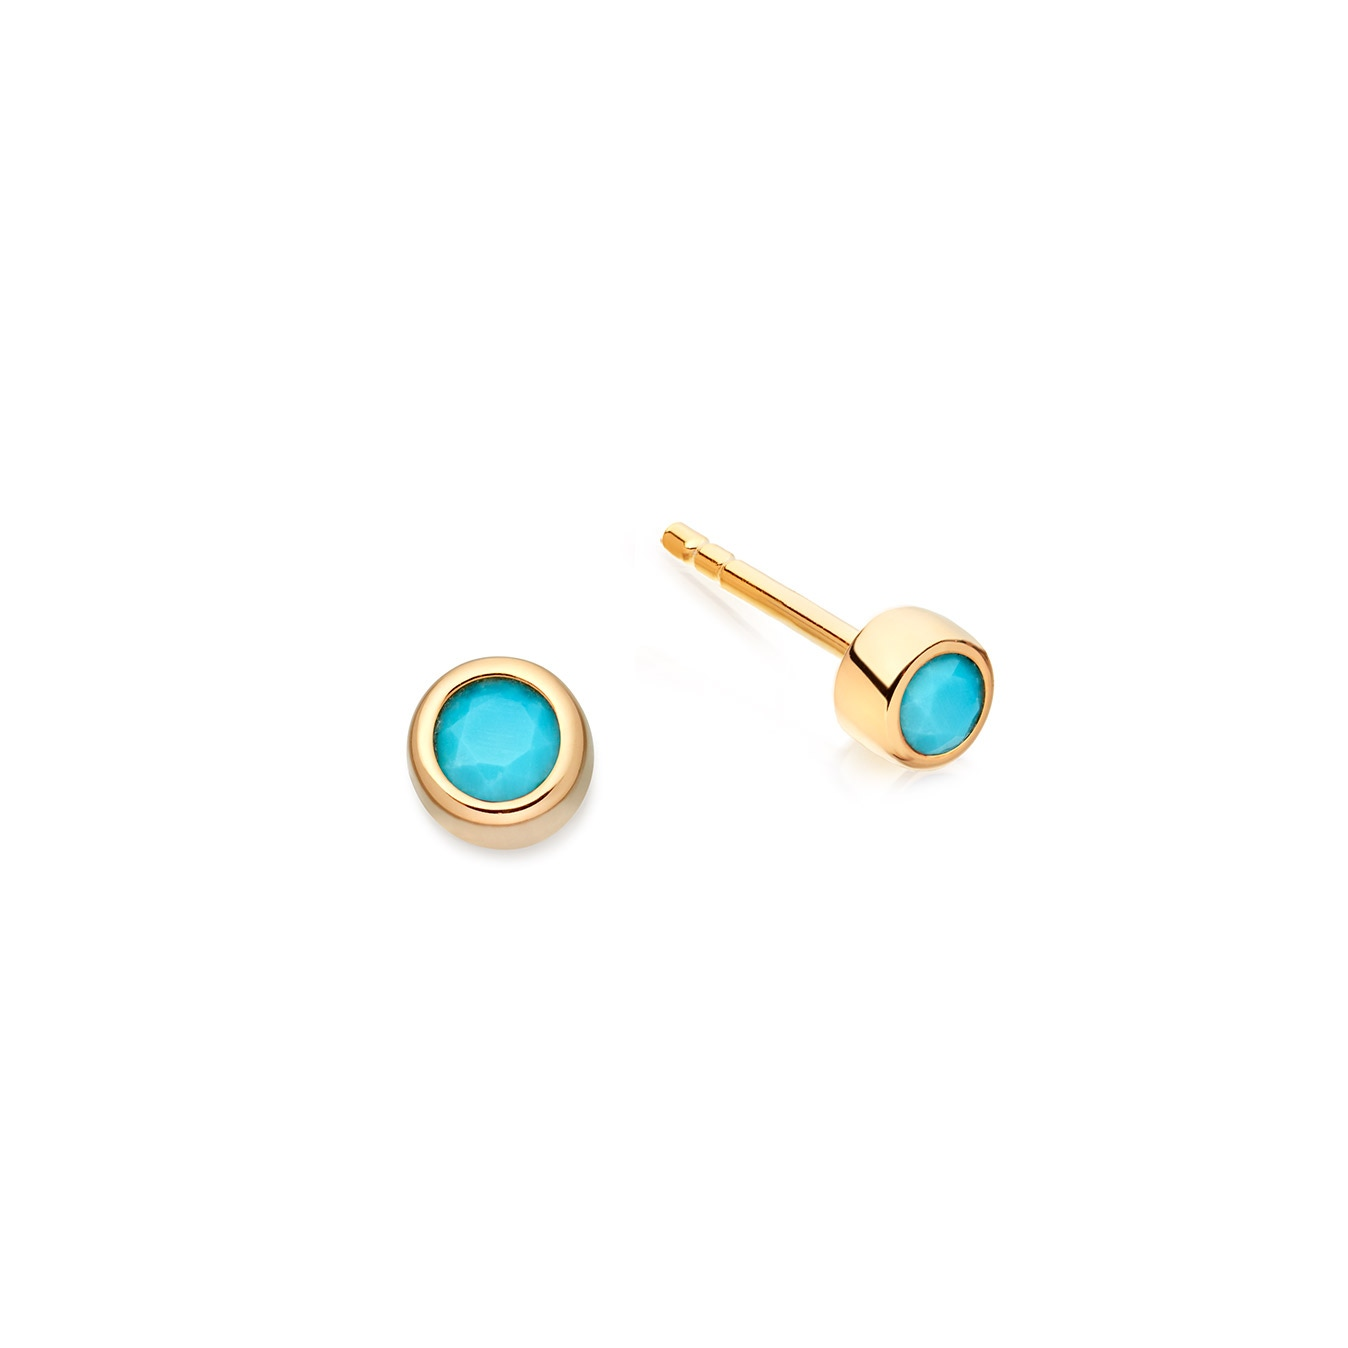 Mini Turquoise Stilla Stud Earrings